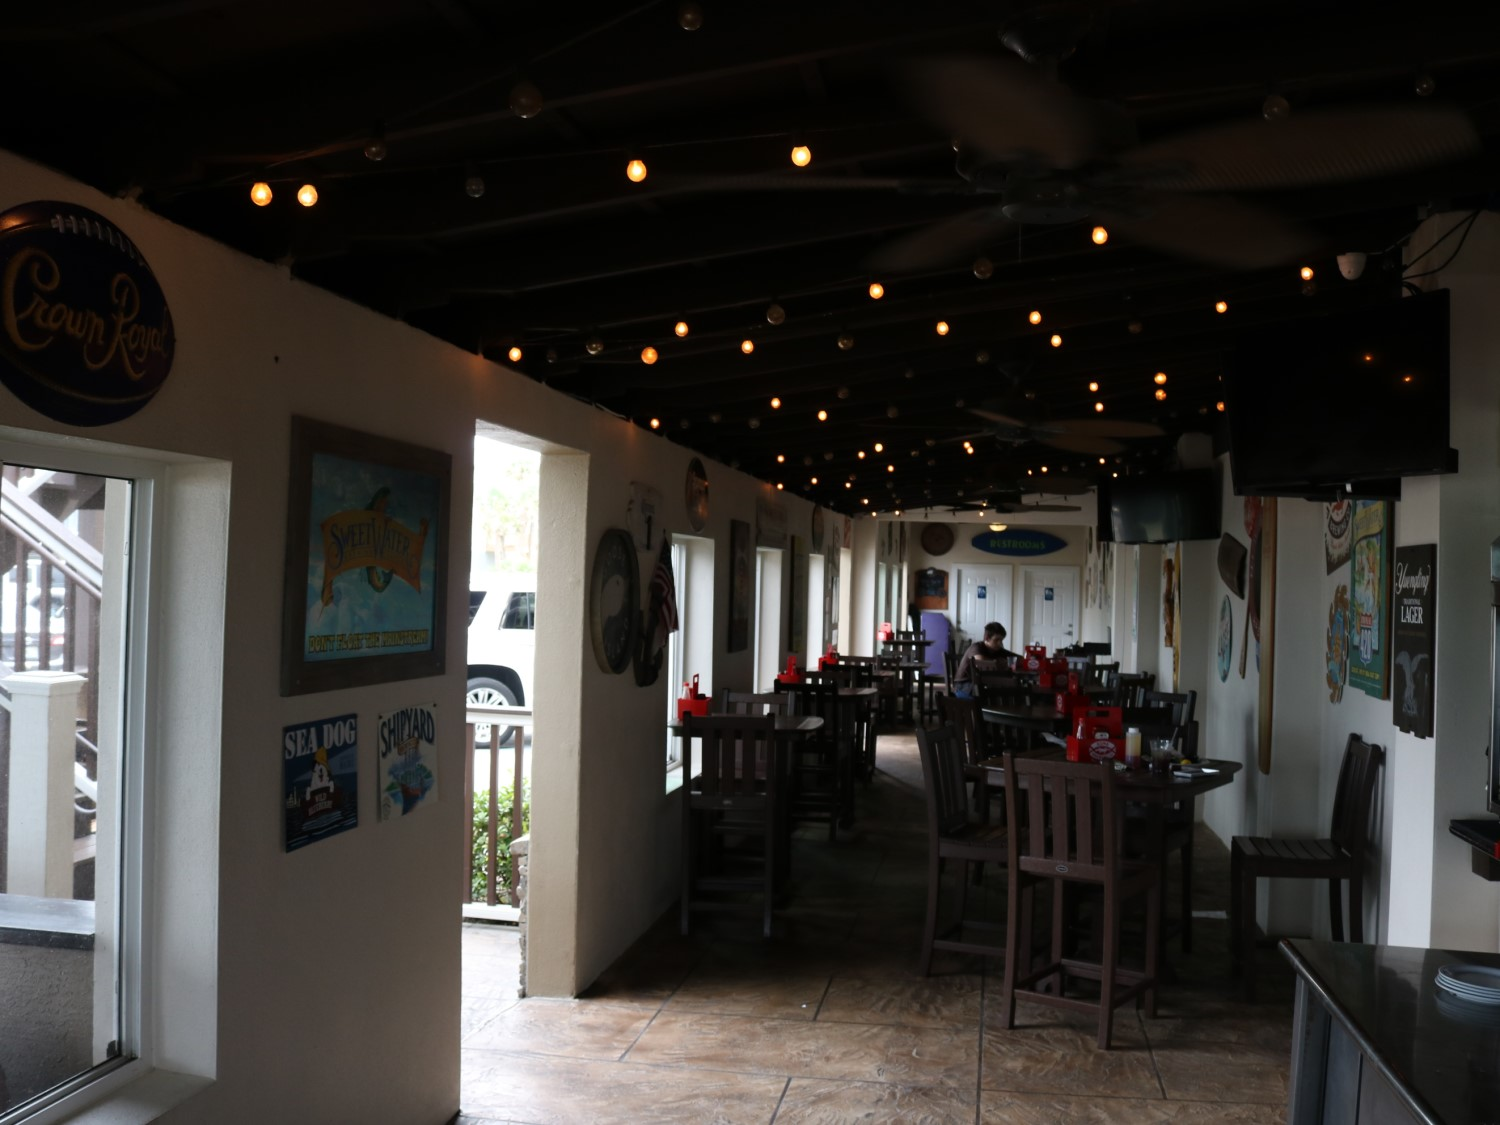 Oceanside Beach Bar and Grill Covered Patio